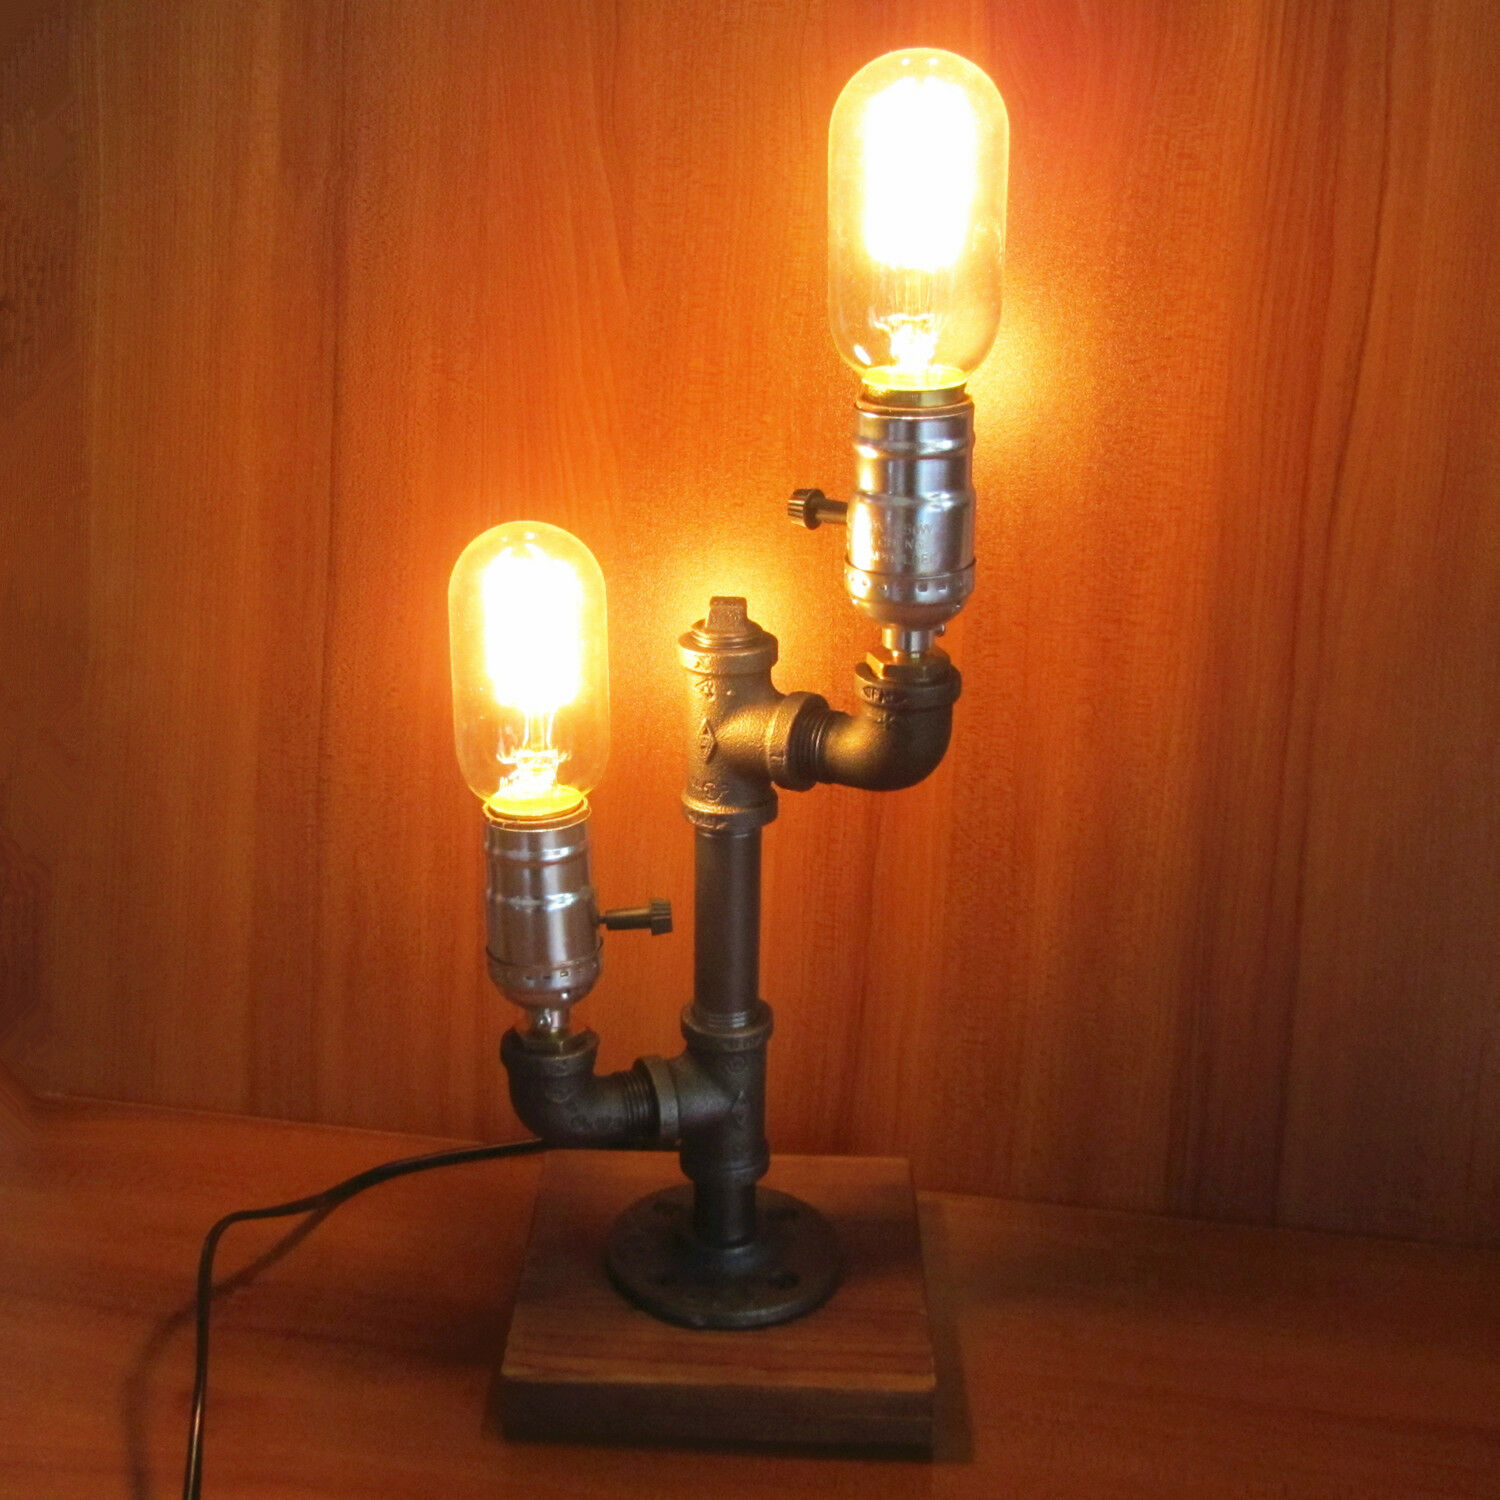 Vintage Edison Bulb Table Lamp: Retro Industrial Pipe Desk Lamp Steampunk Style With